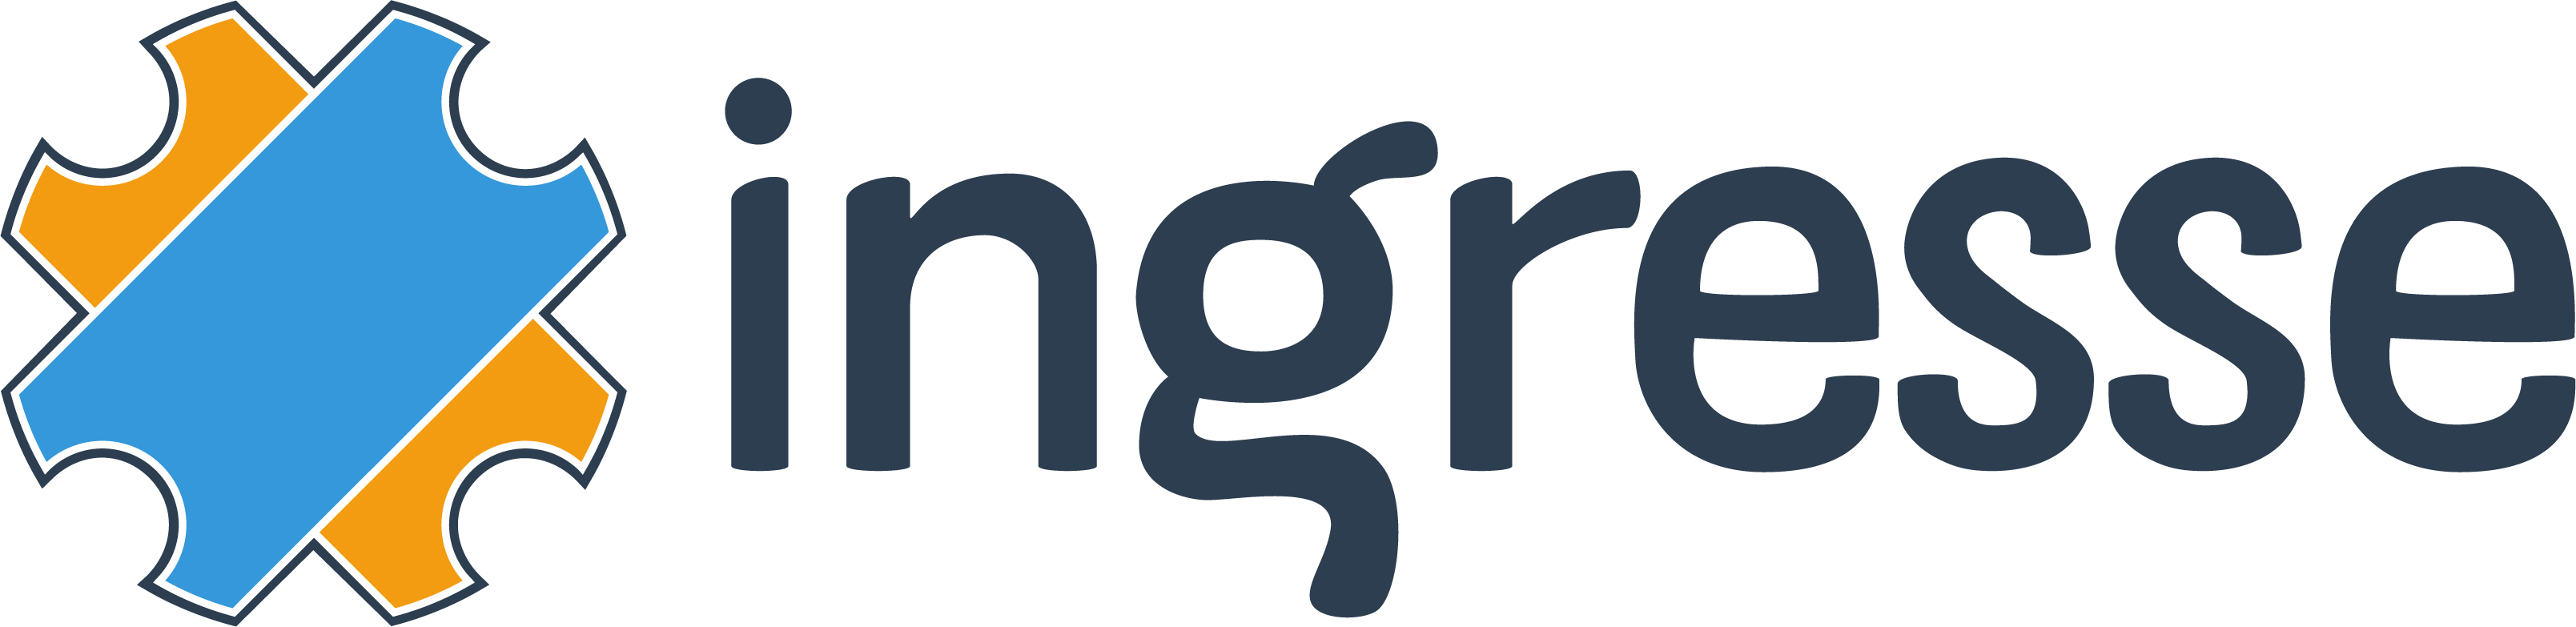 logo ingresse